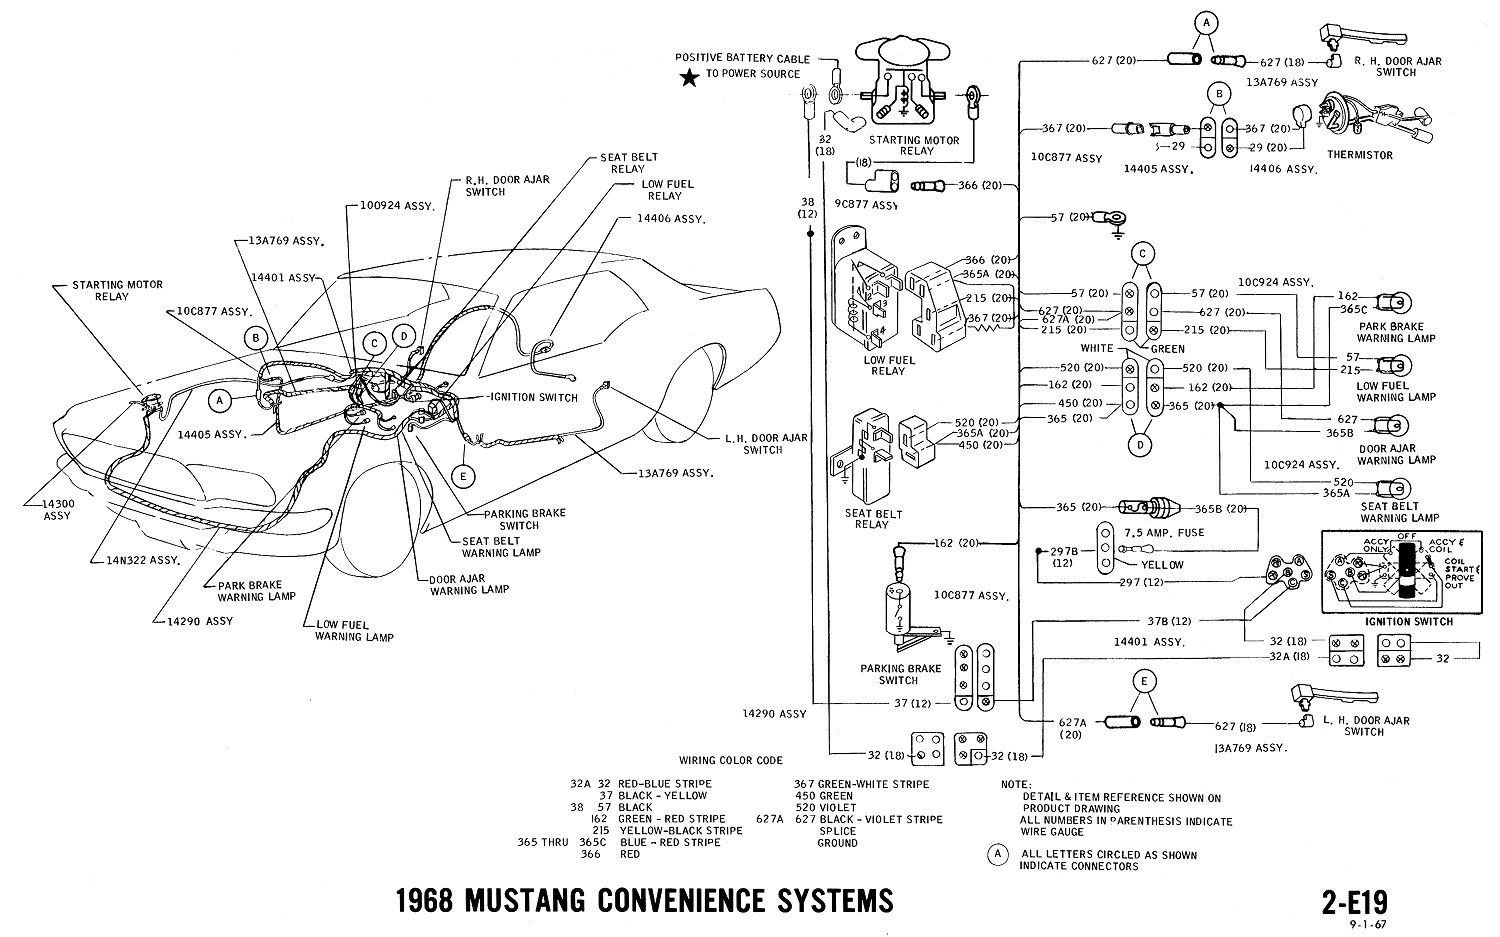 1969 Mustang Wiring Schematic Circuit Diagram Schematic 1968 Cougar Turn  Signal Wiring Diagram 1968 Cougar Wiring Diagram